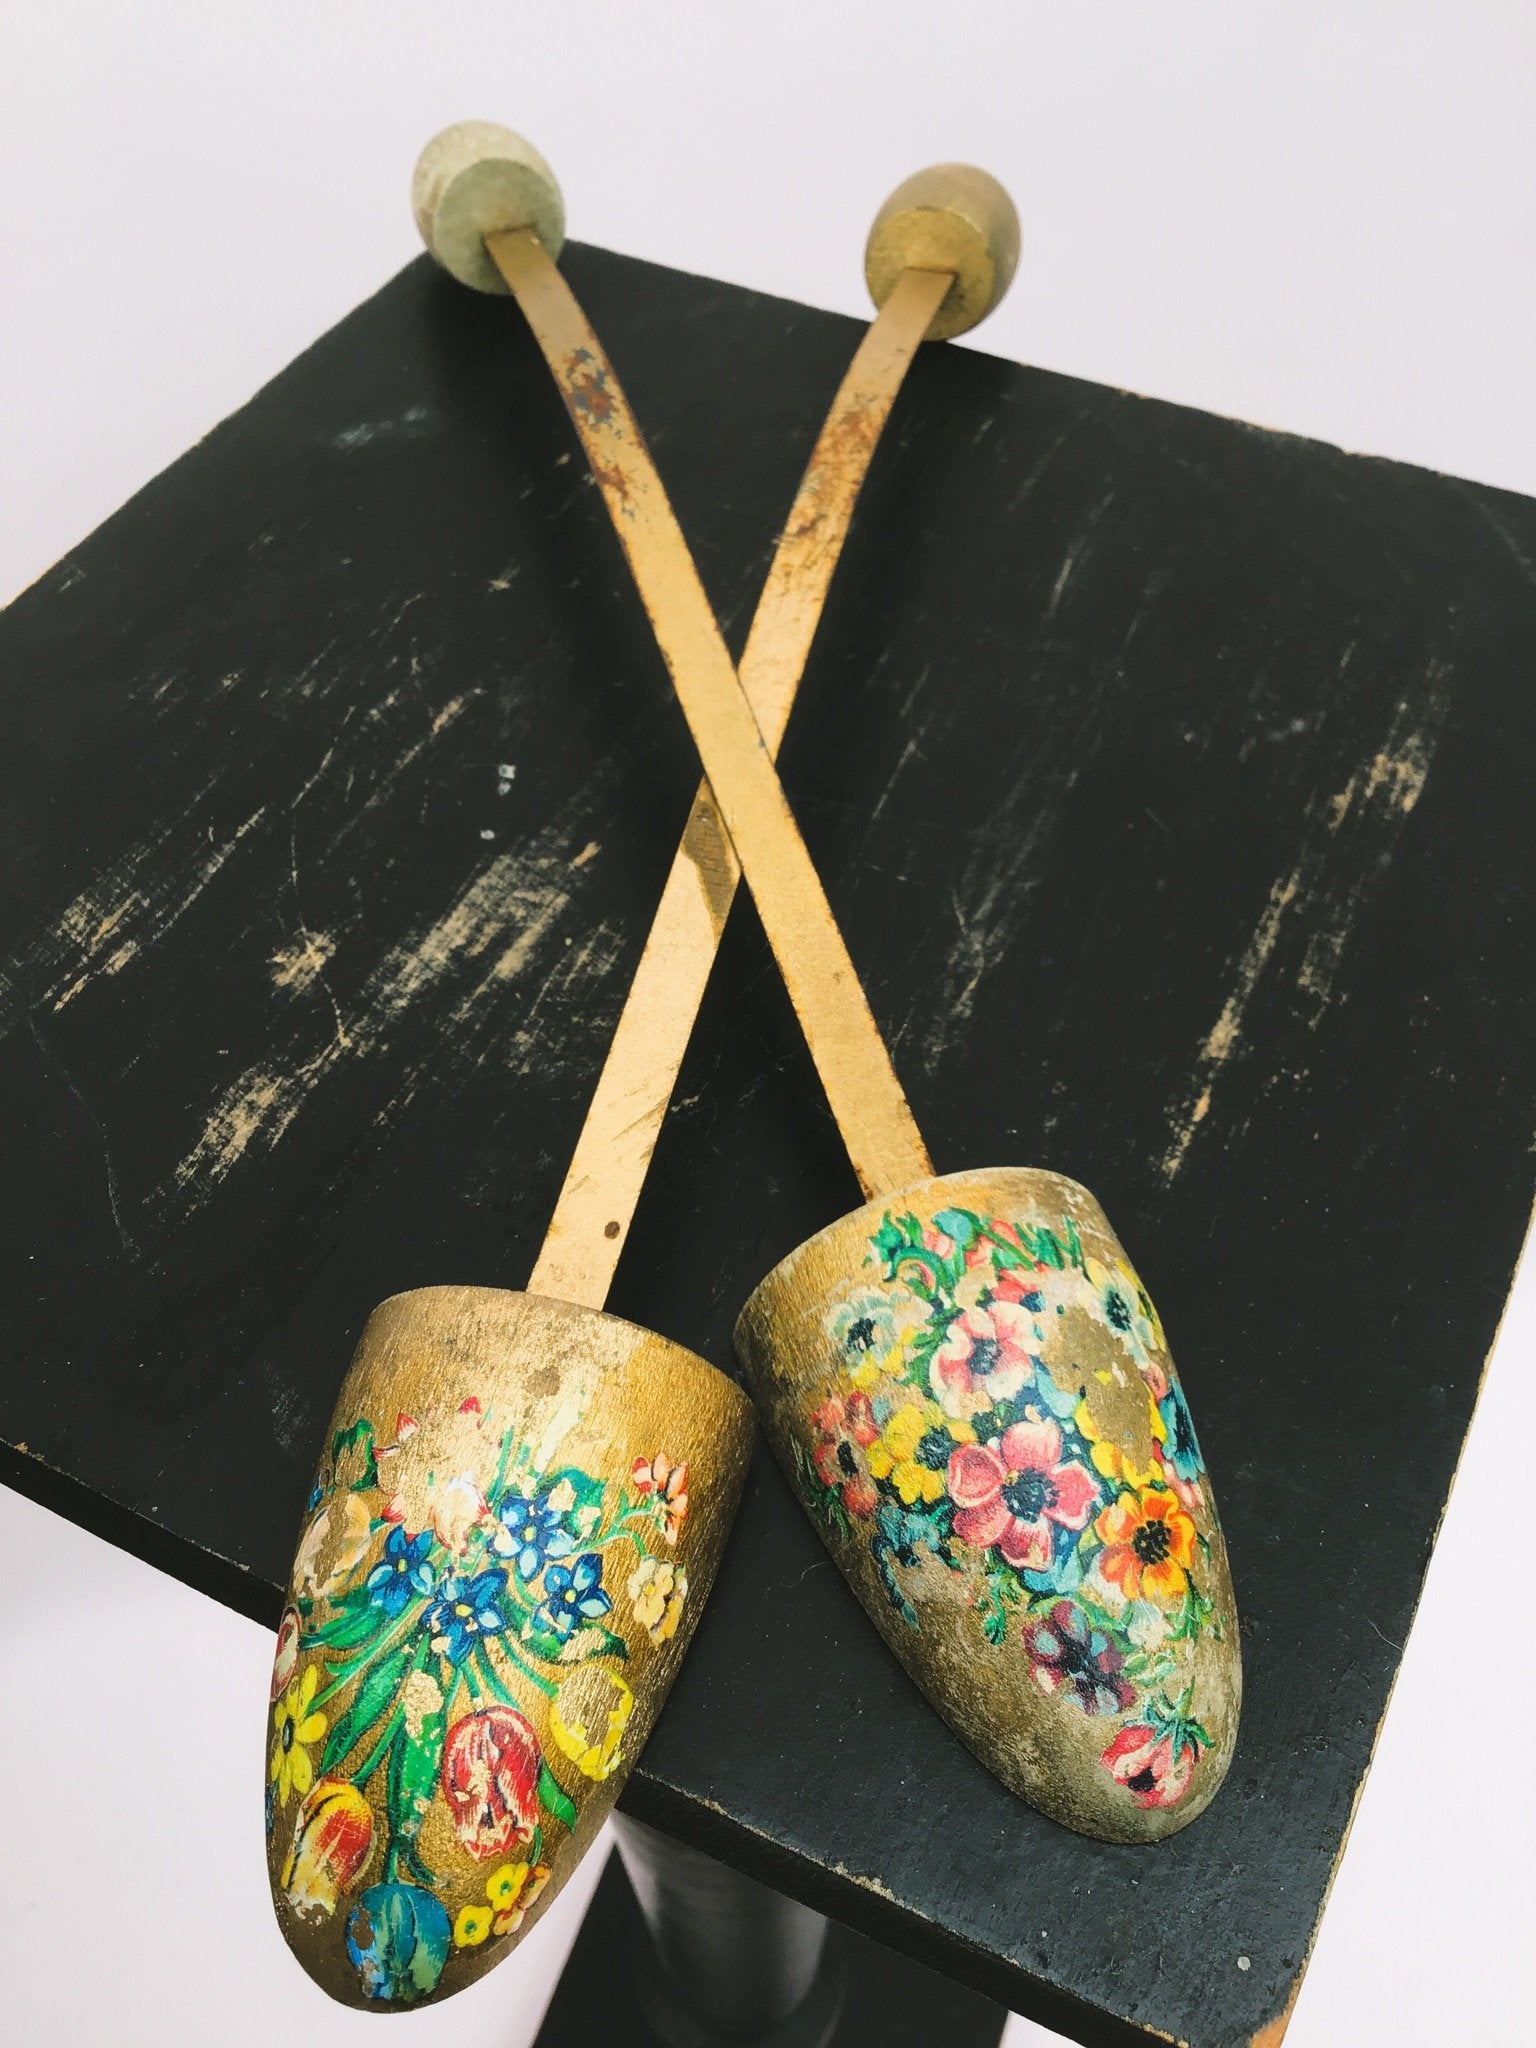 Floral decorated vintage shoe trees, for ballet shoes or decor